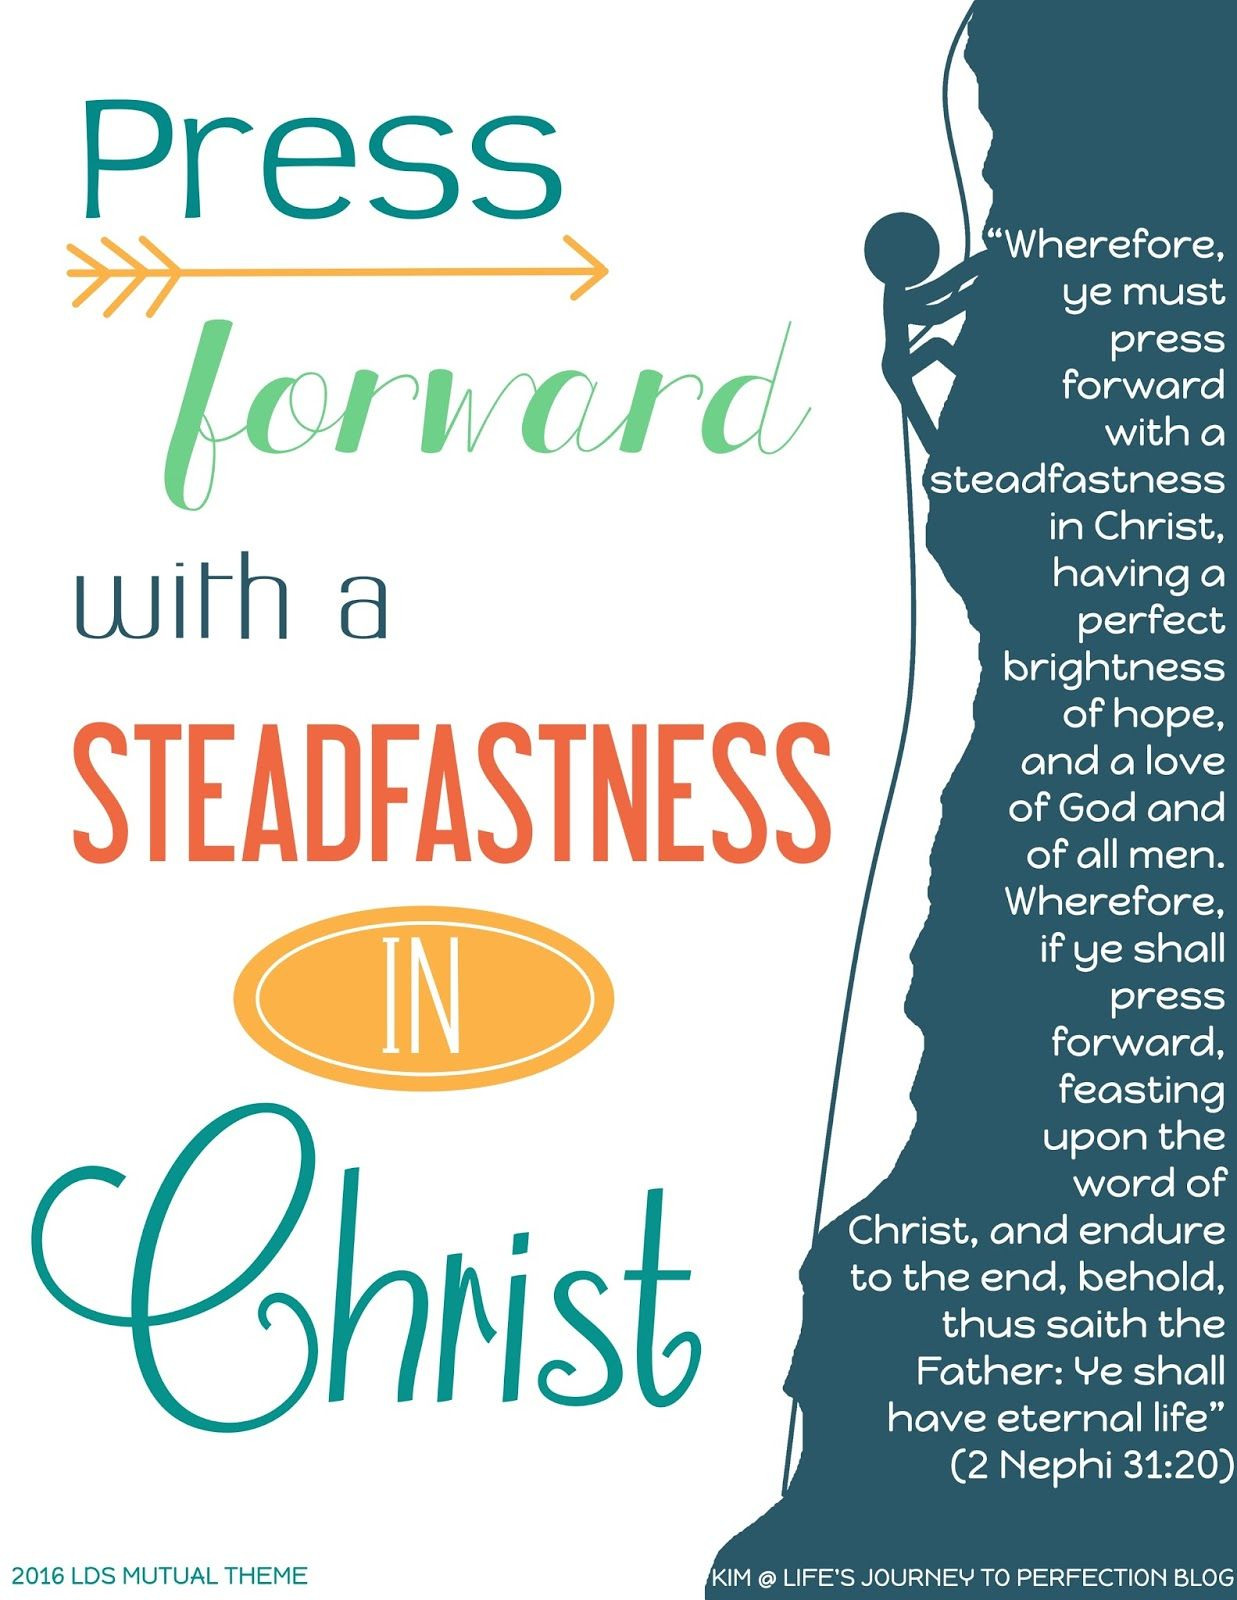 2016 lds mutual theme ideas and free printables: press forward with